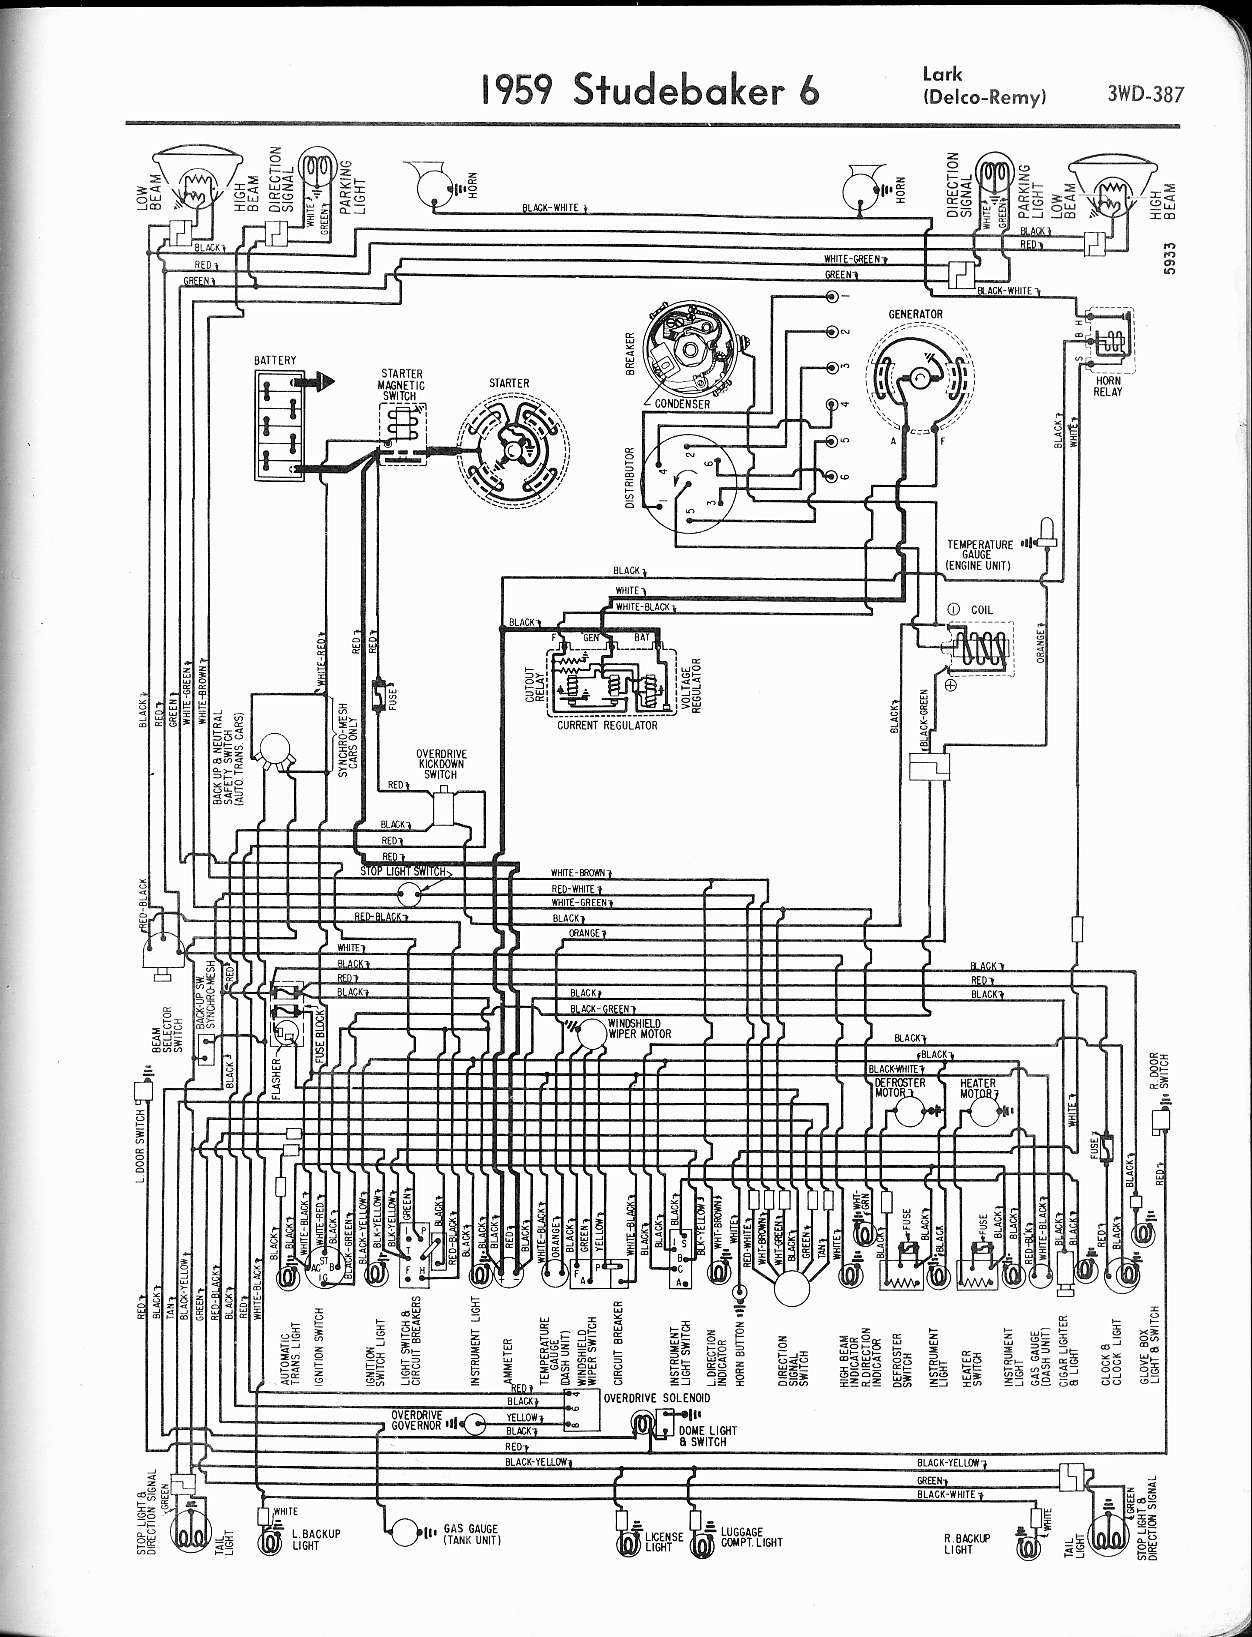 Studebaker wiring diagrams - The Old Car Manual ProjectThe Old Car Manual Project